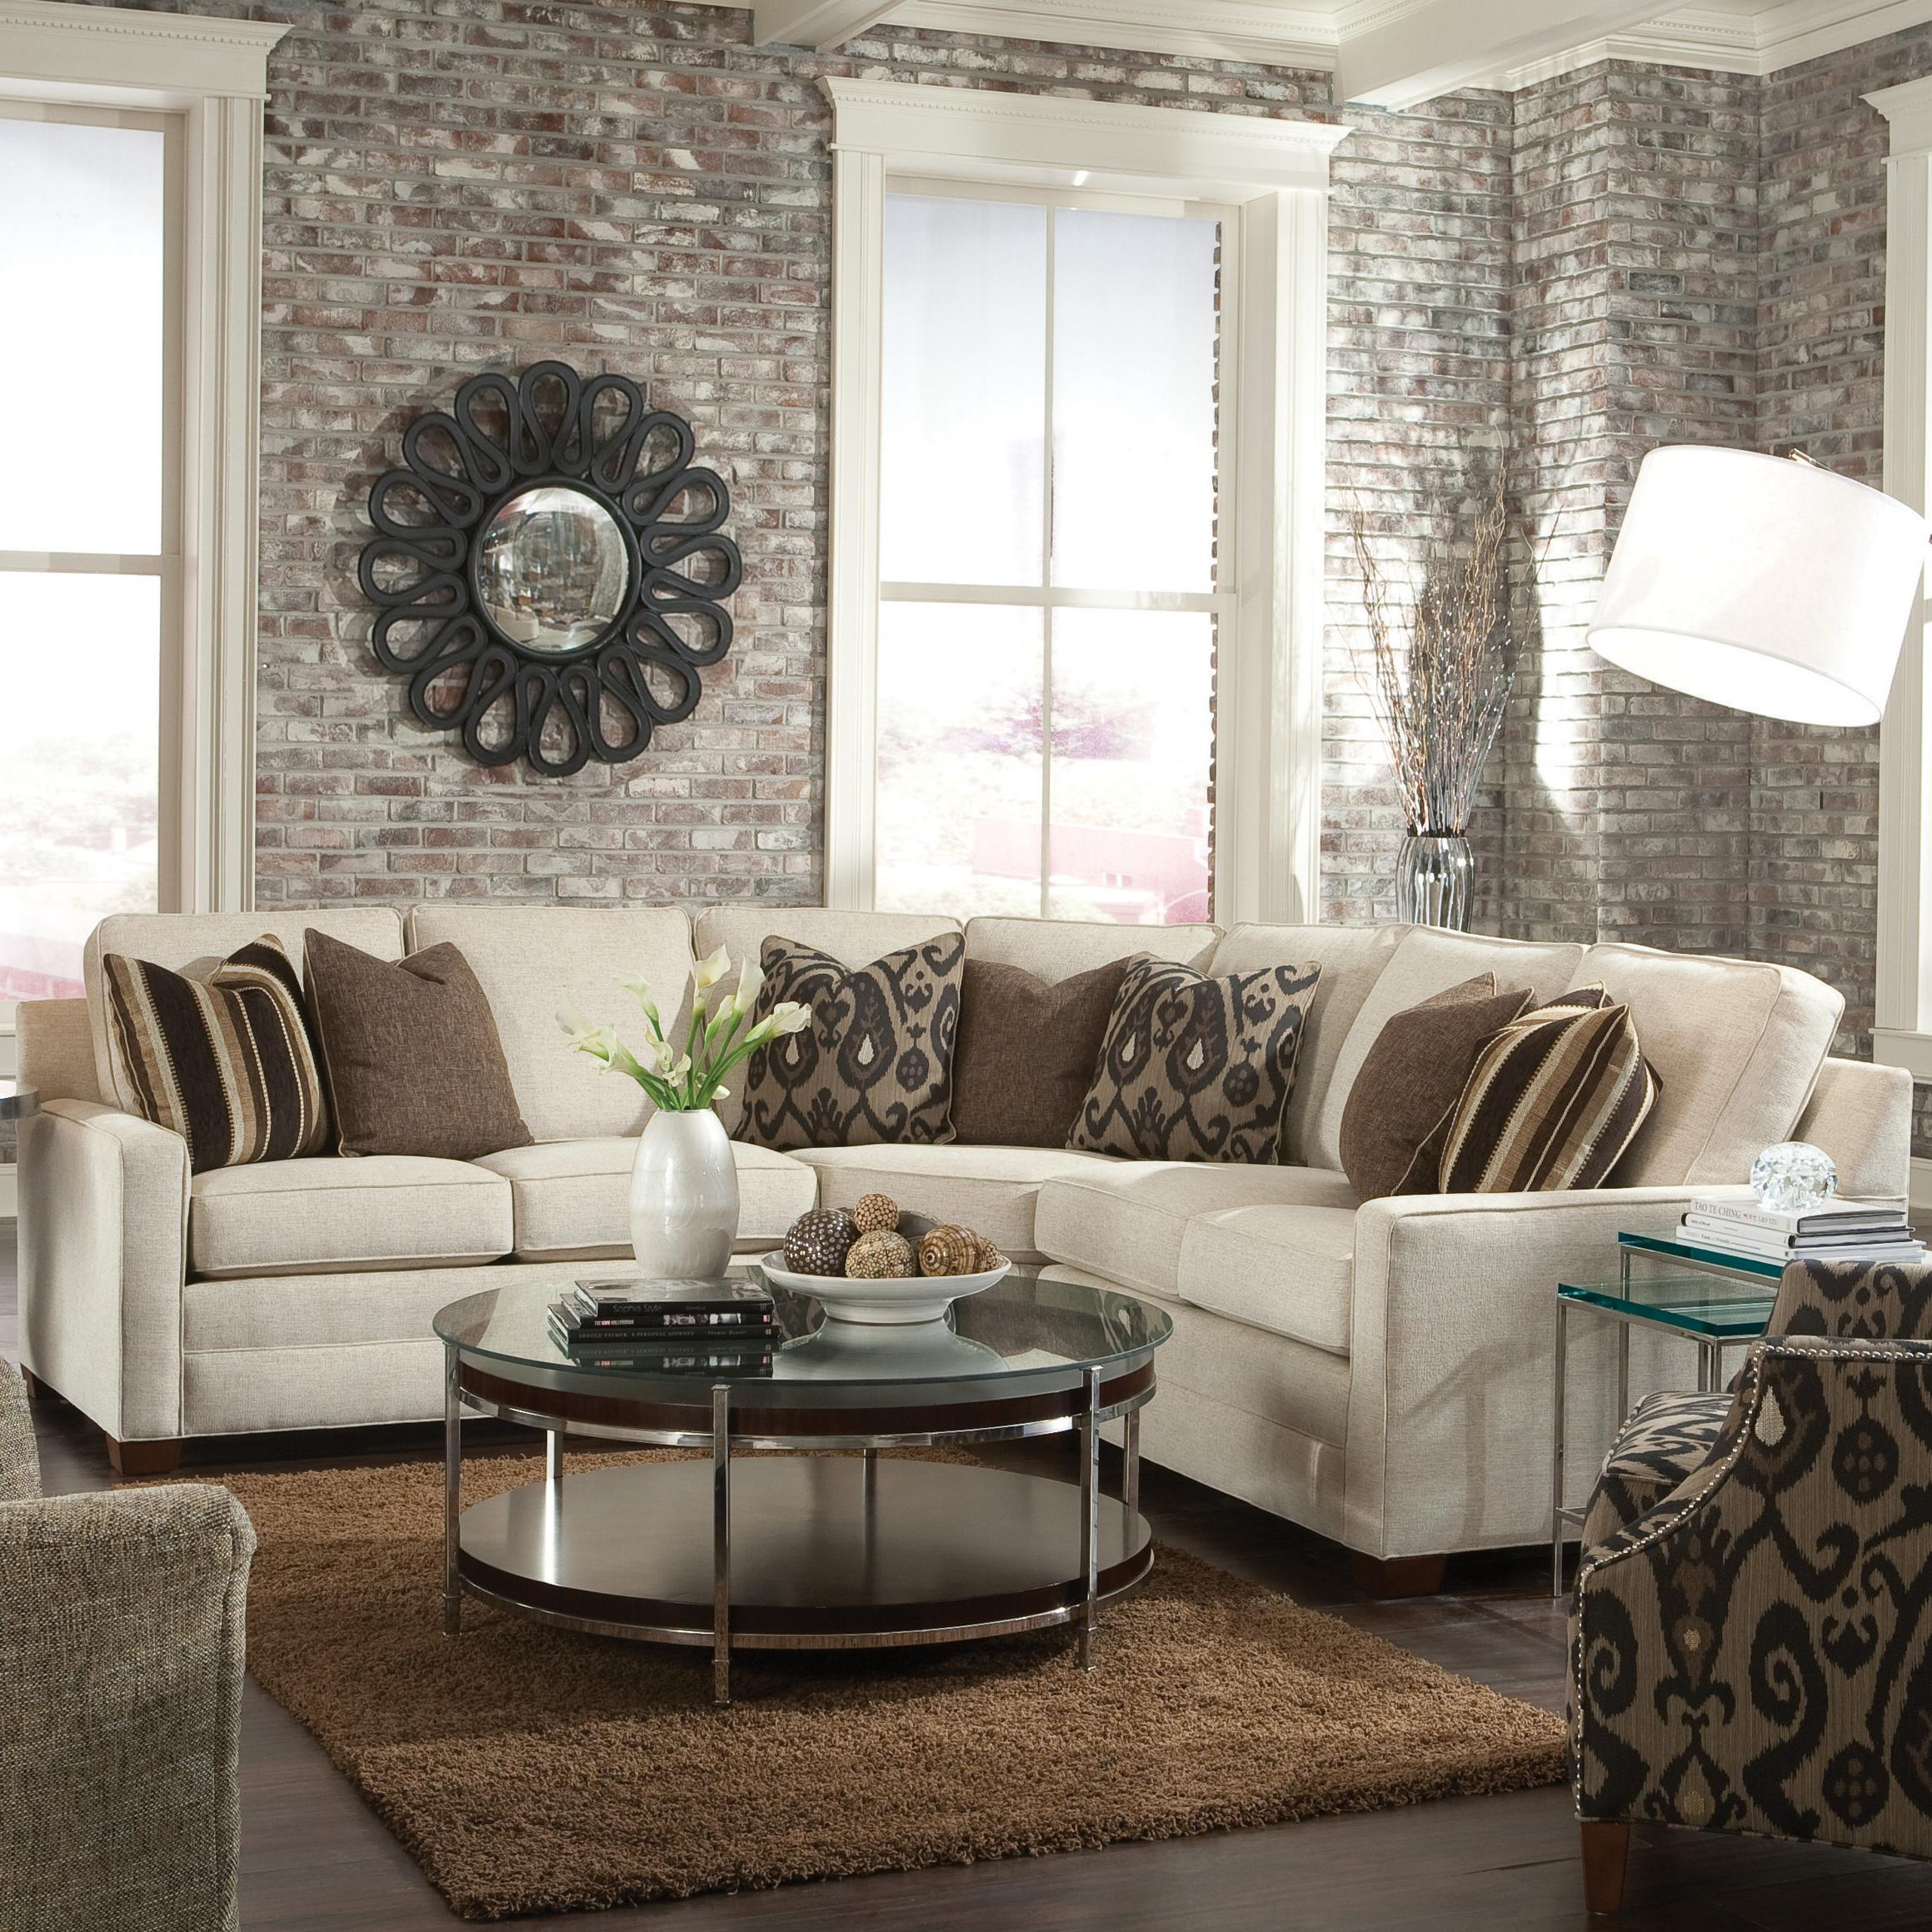 Huntington House Furniture Quality 2062 Customizable Contemporary Sectional Sofa With Wedge Corner By Huntington House At Wayside Furniture